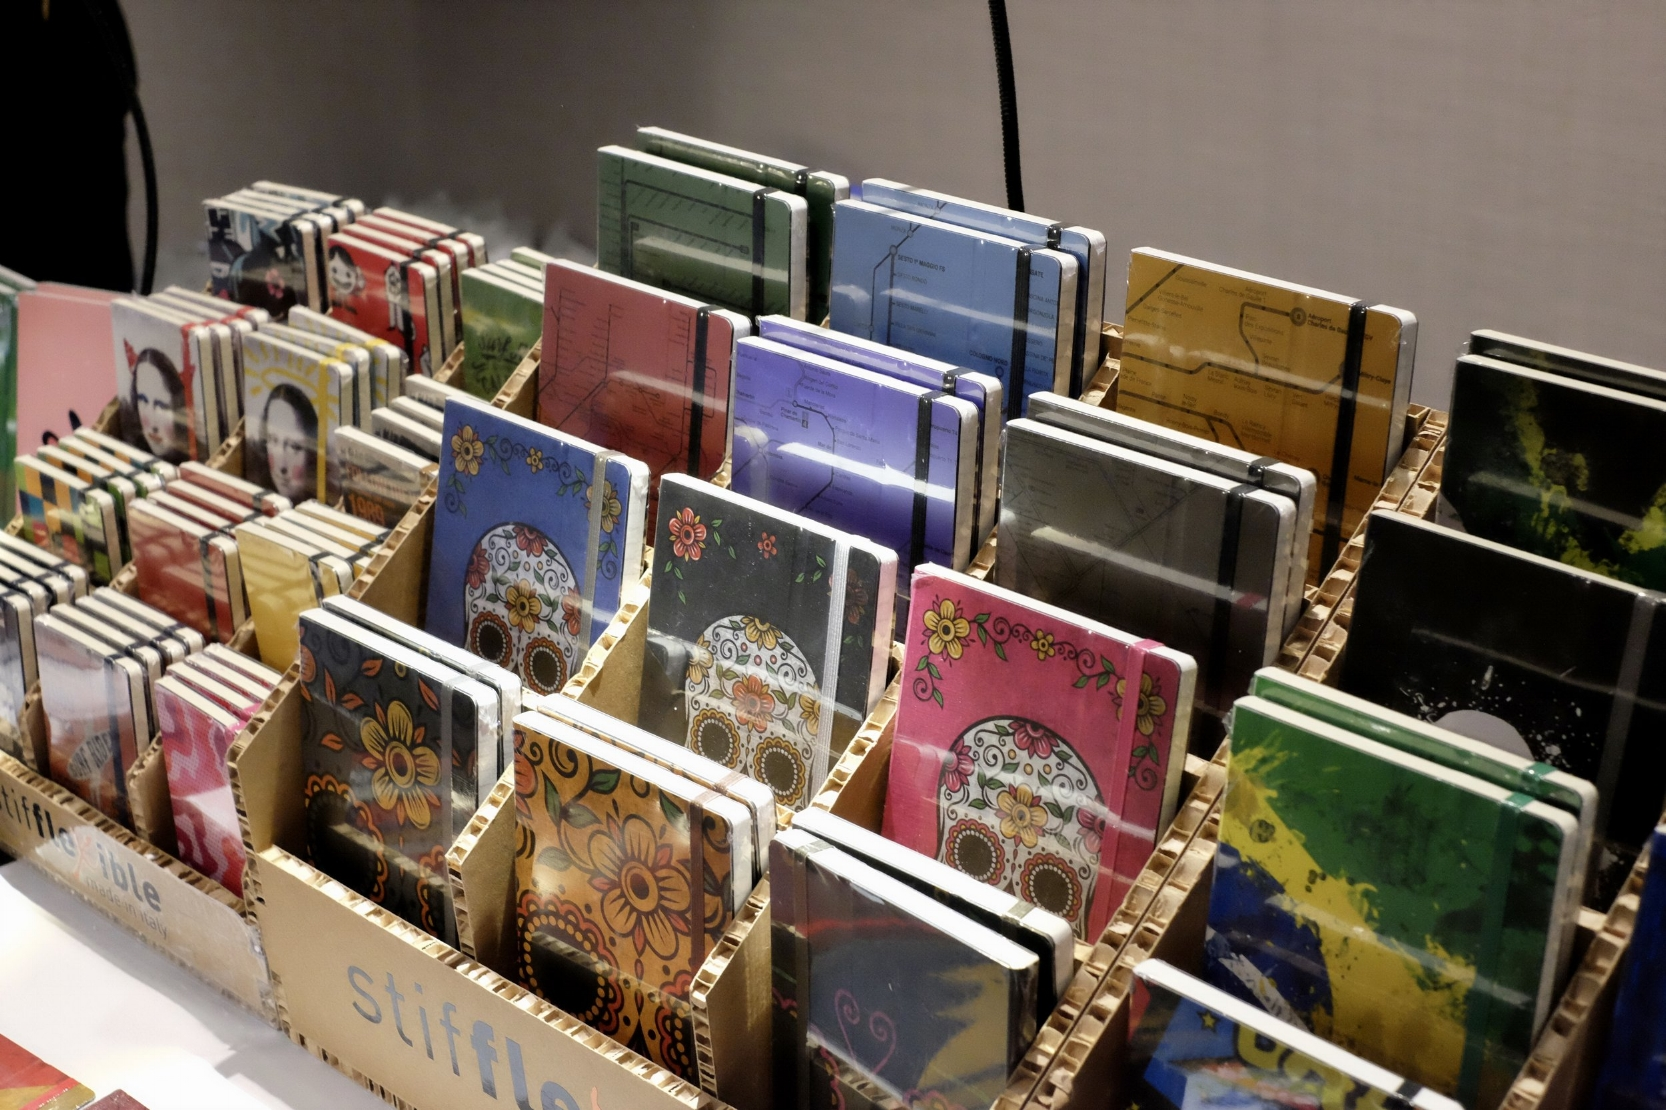 Distributor Luxury Brands brings a wide array of Stifflexible notebooks to pen shows.